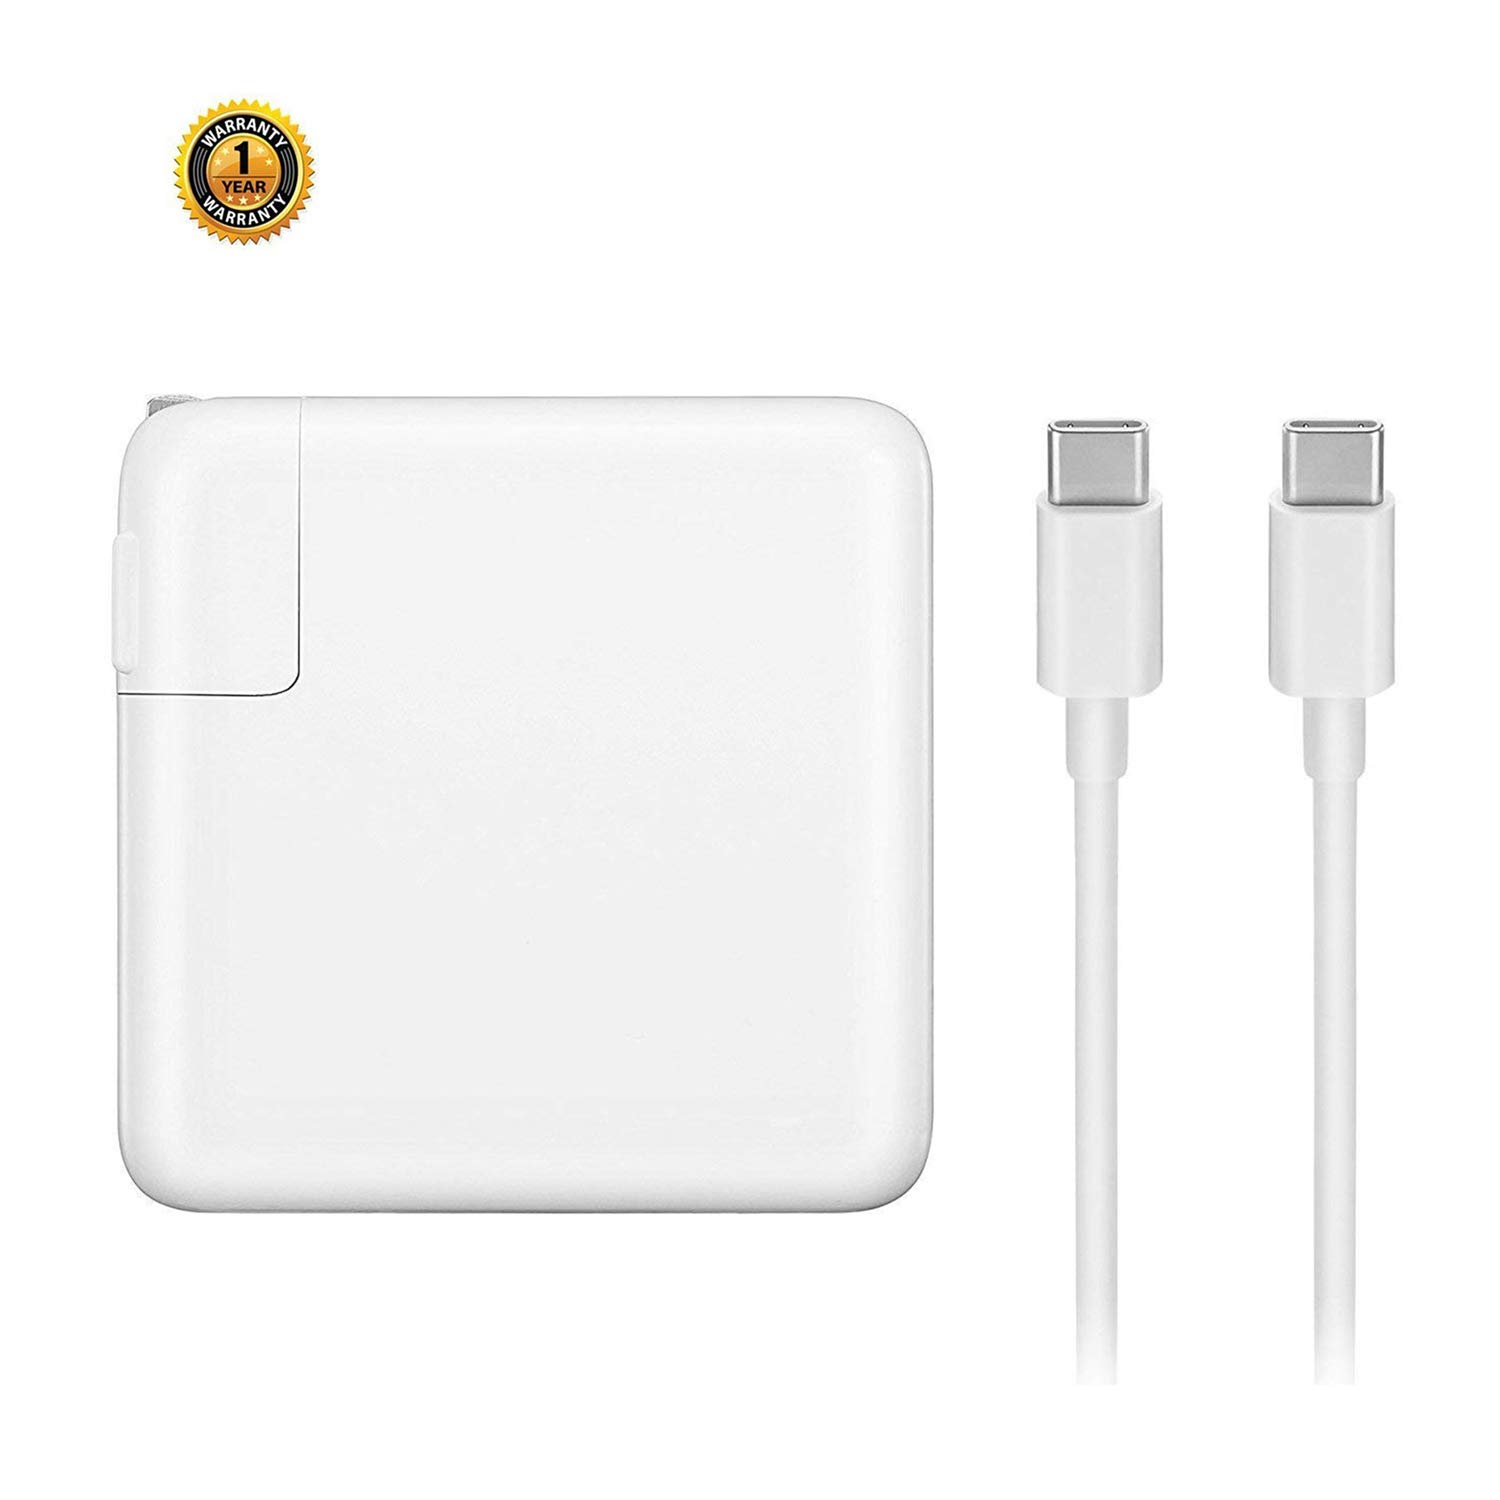 Vanfast 61W USB-C Charger, Replacement for Mac Book Pro with 13'' After 2016 and Mac Book Air 2018,Compatible with Samsung,Nexus,Nintendo Switch,Lenovo,ASUS,Acer,Dell Loptop with Type-C Charge Cable